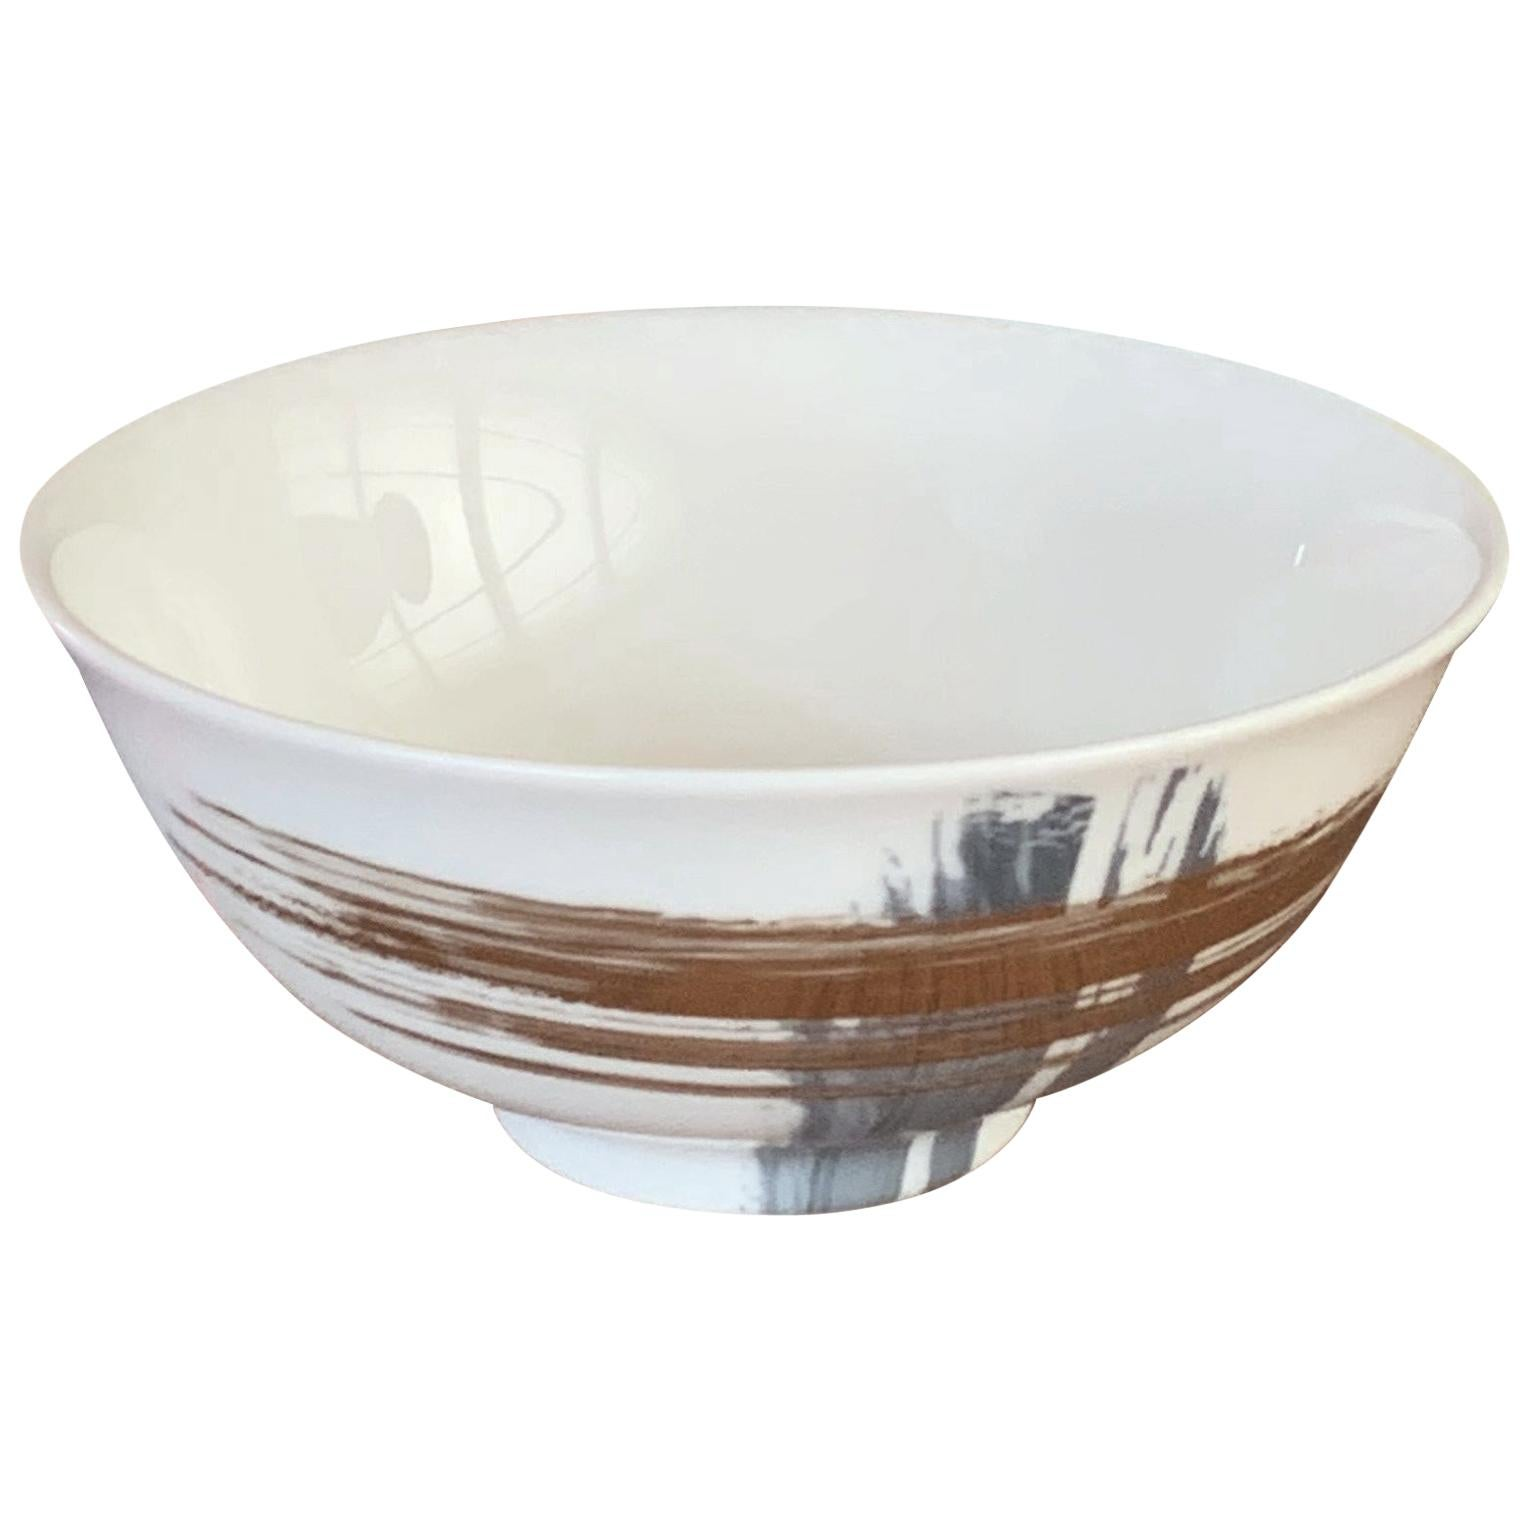 Set of 2 Chinese Rice Bowl Artisan Brush André Fu Living Tableware New